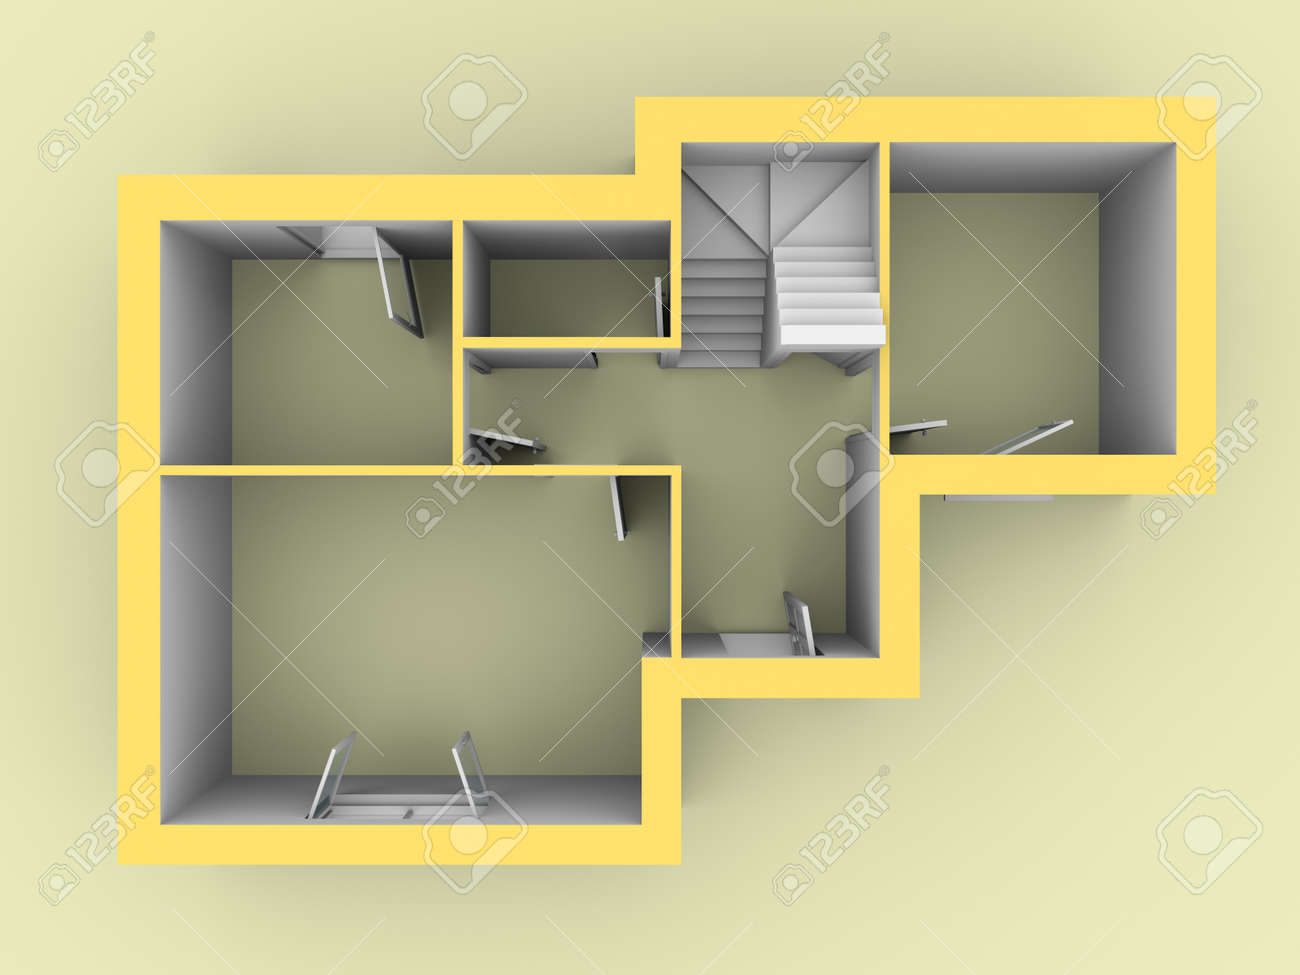 3d Model Of A House As Seen From Top View Doors And Windows Are Open